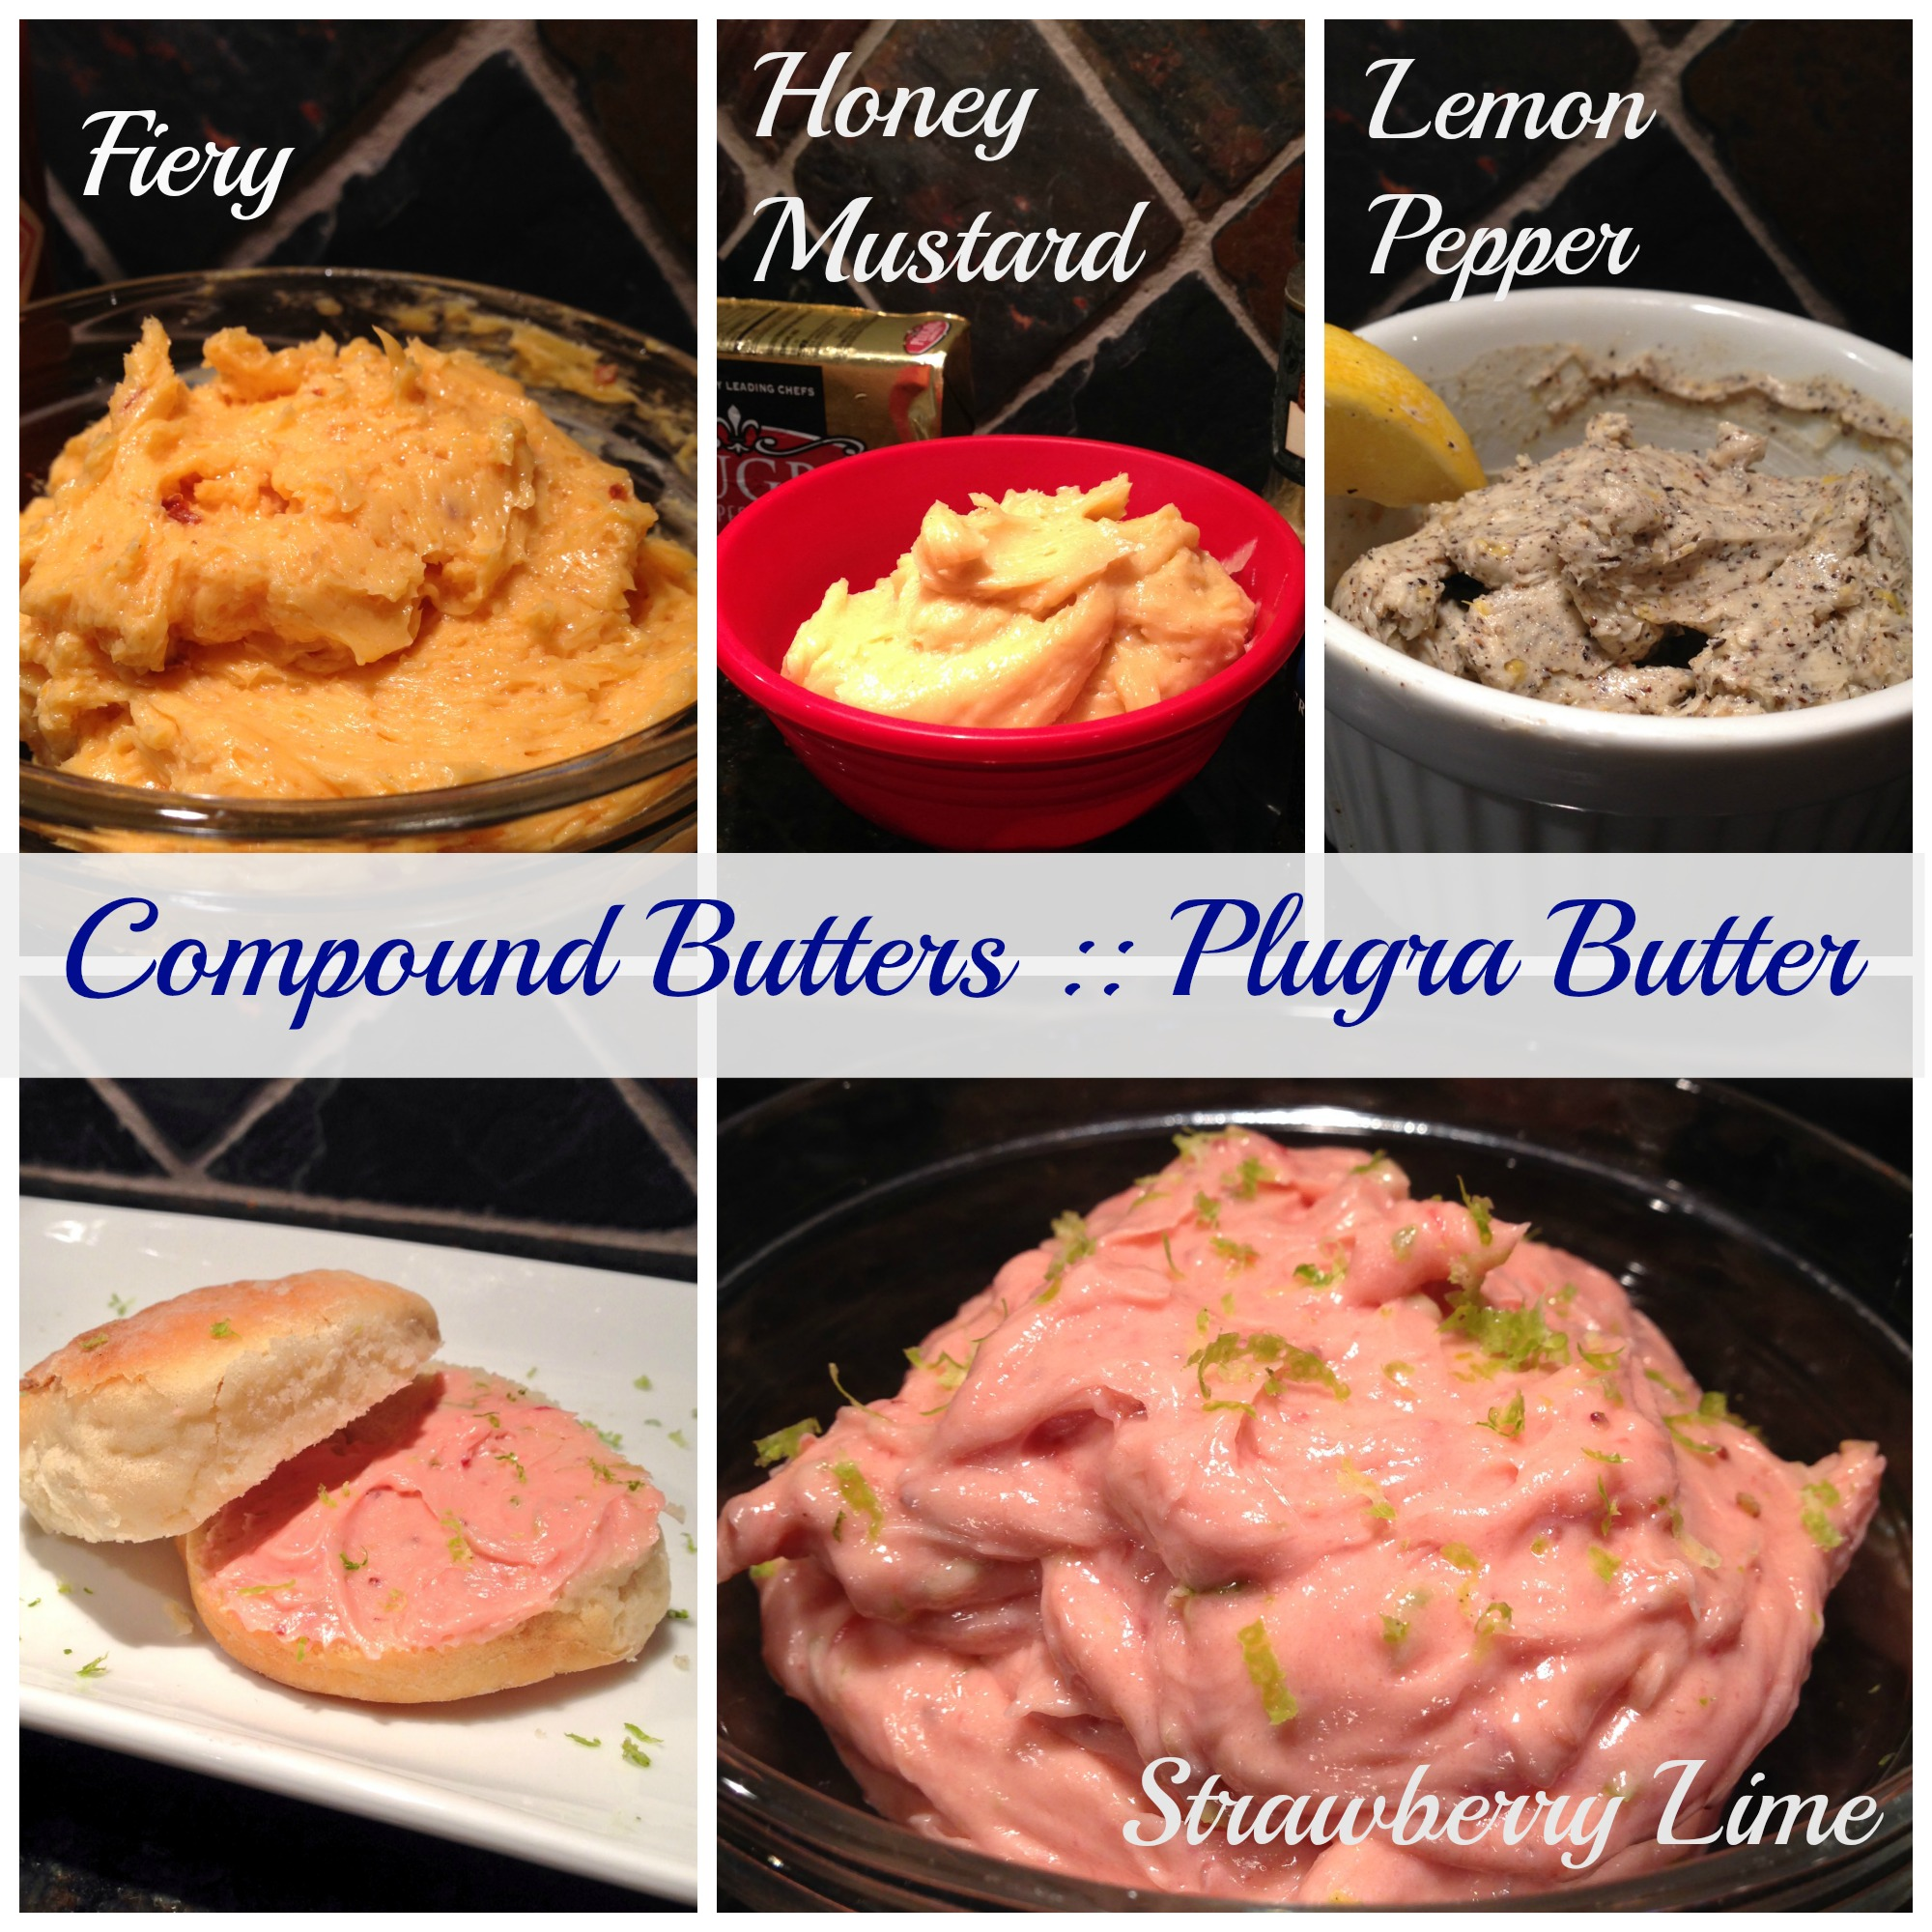 4 Compound Butters :: Plugra Butter